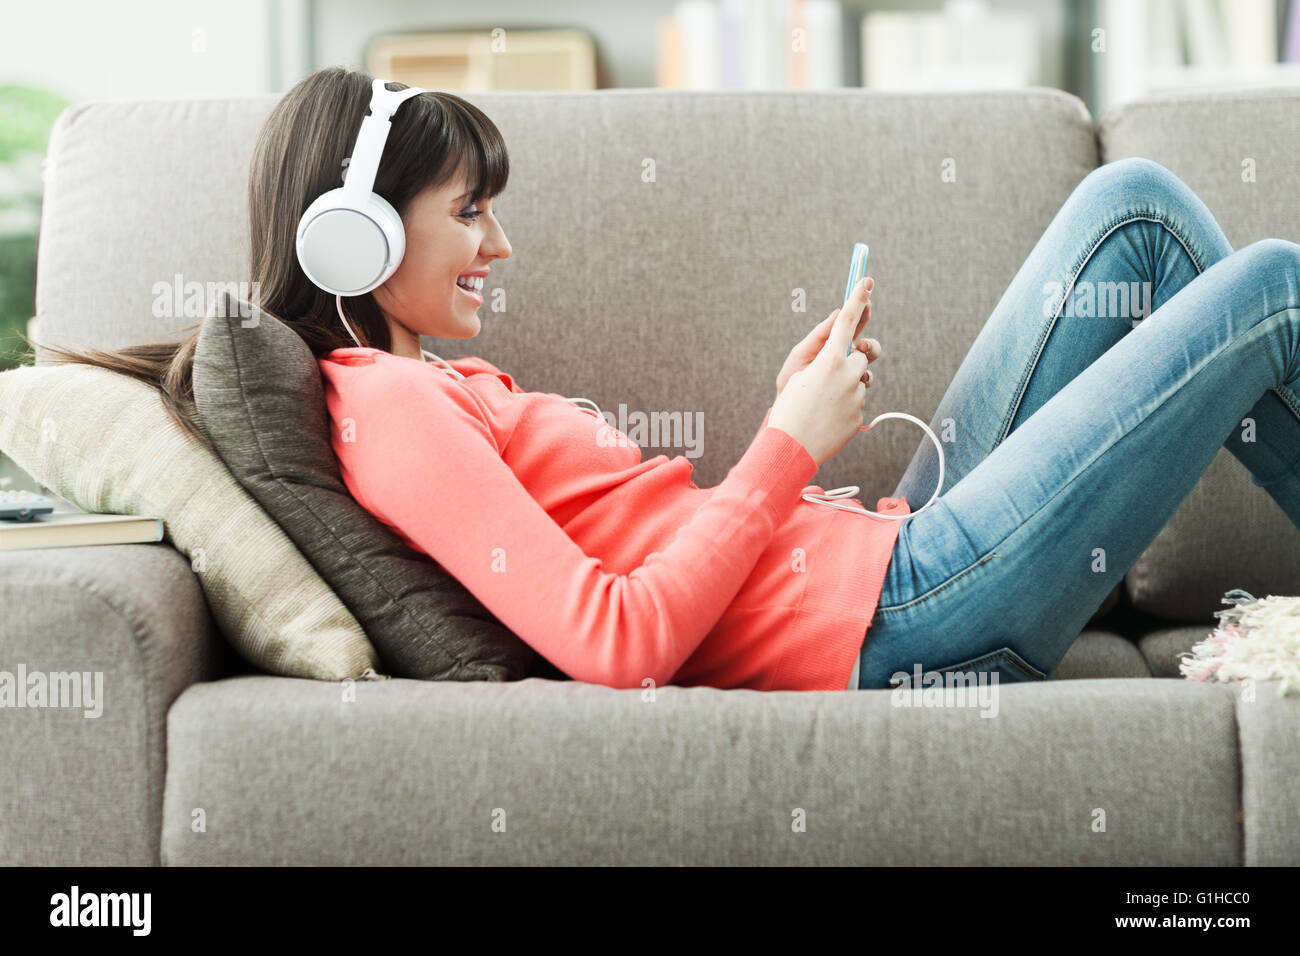 Attractive young woman on the sofa at home, she is playing music with her smarphone and wearing headphones, leisure - Stock Image